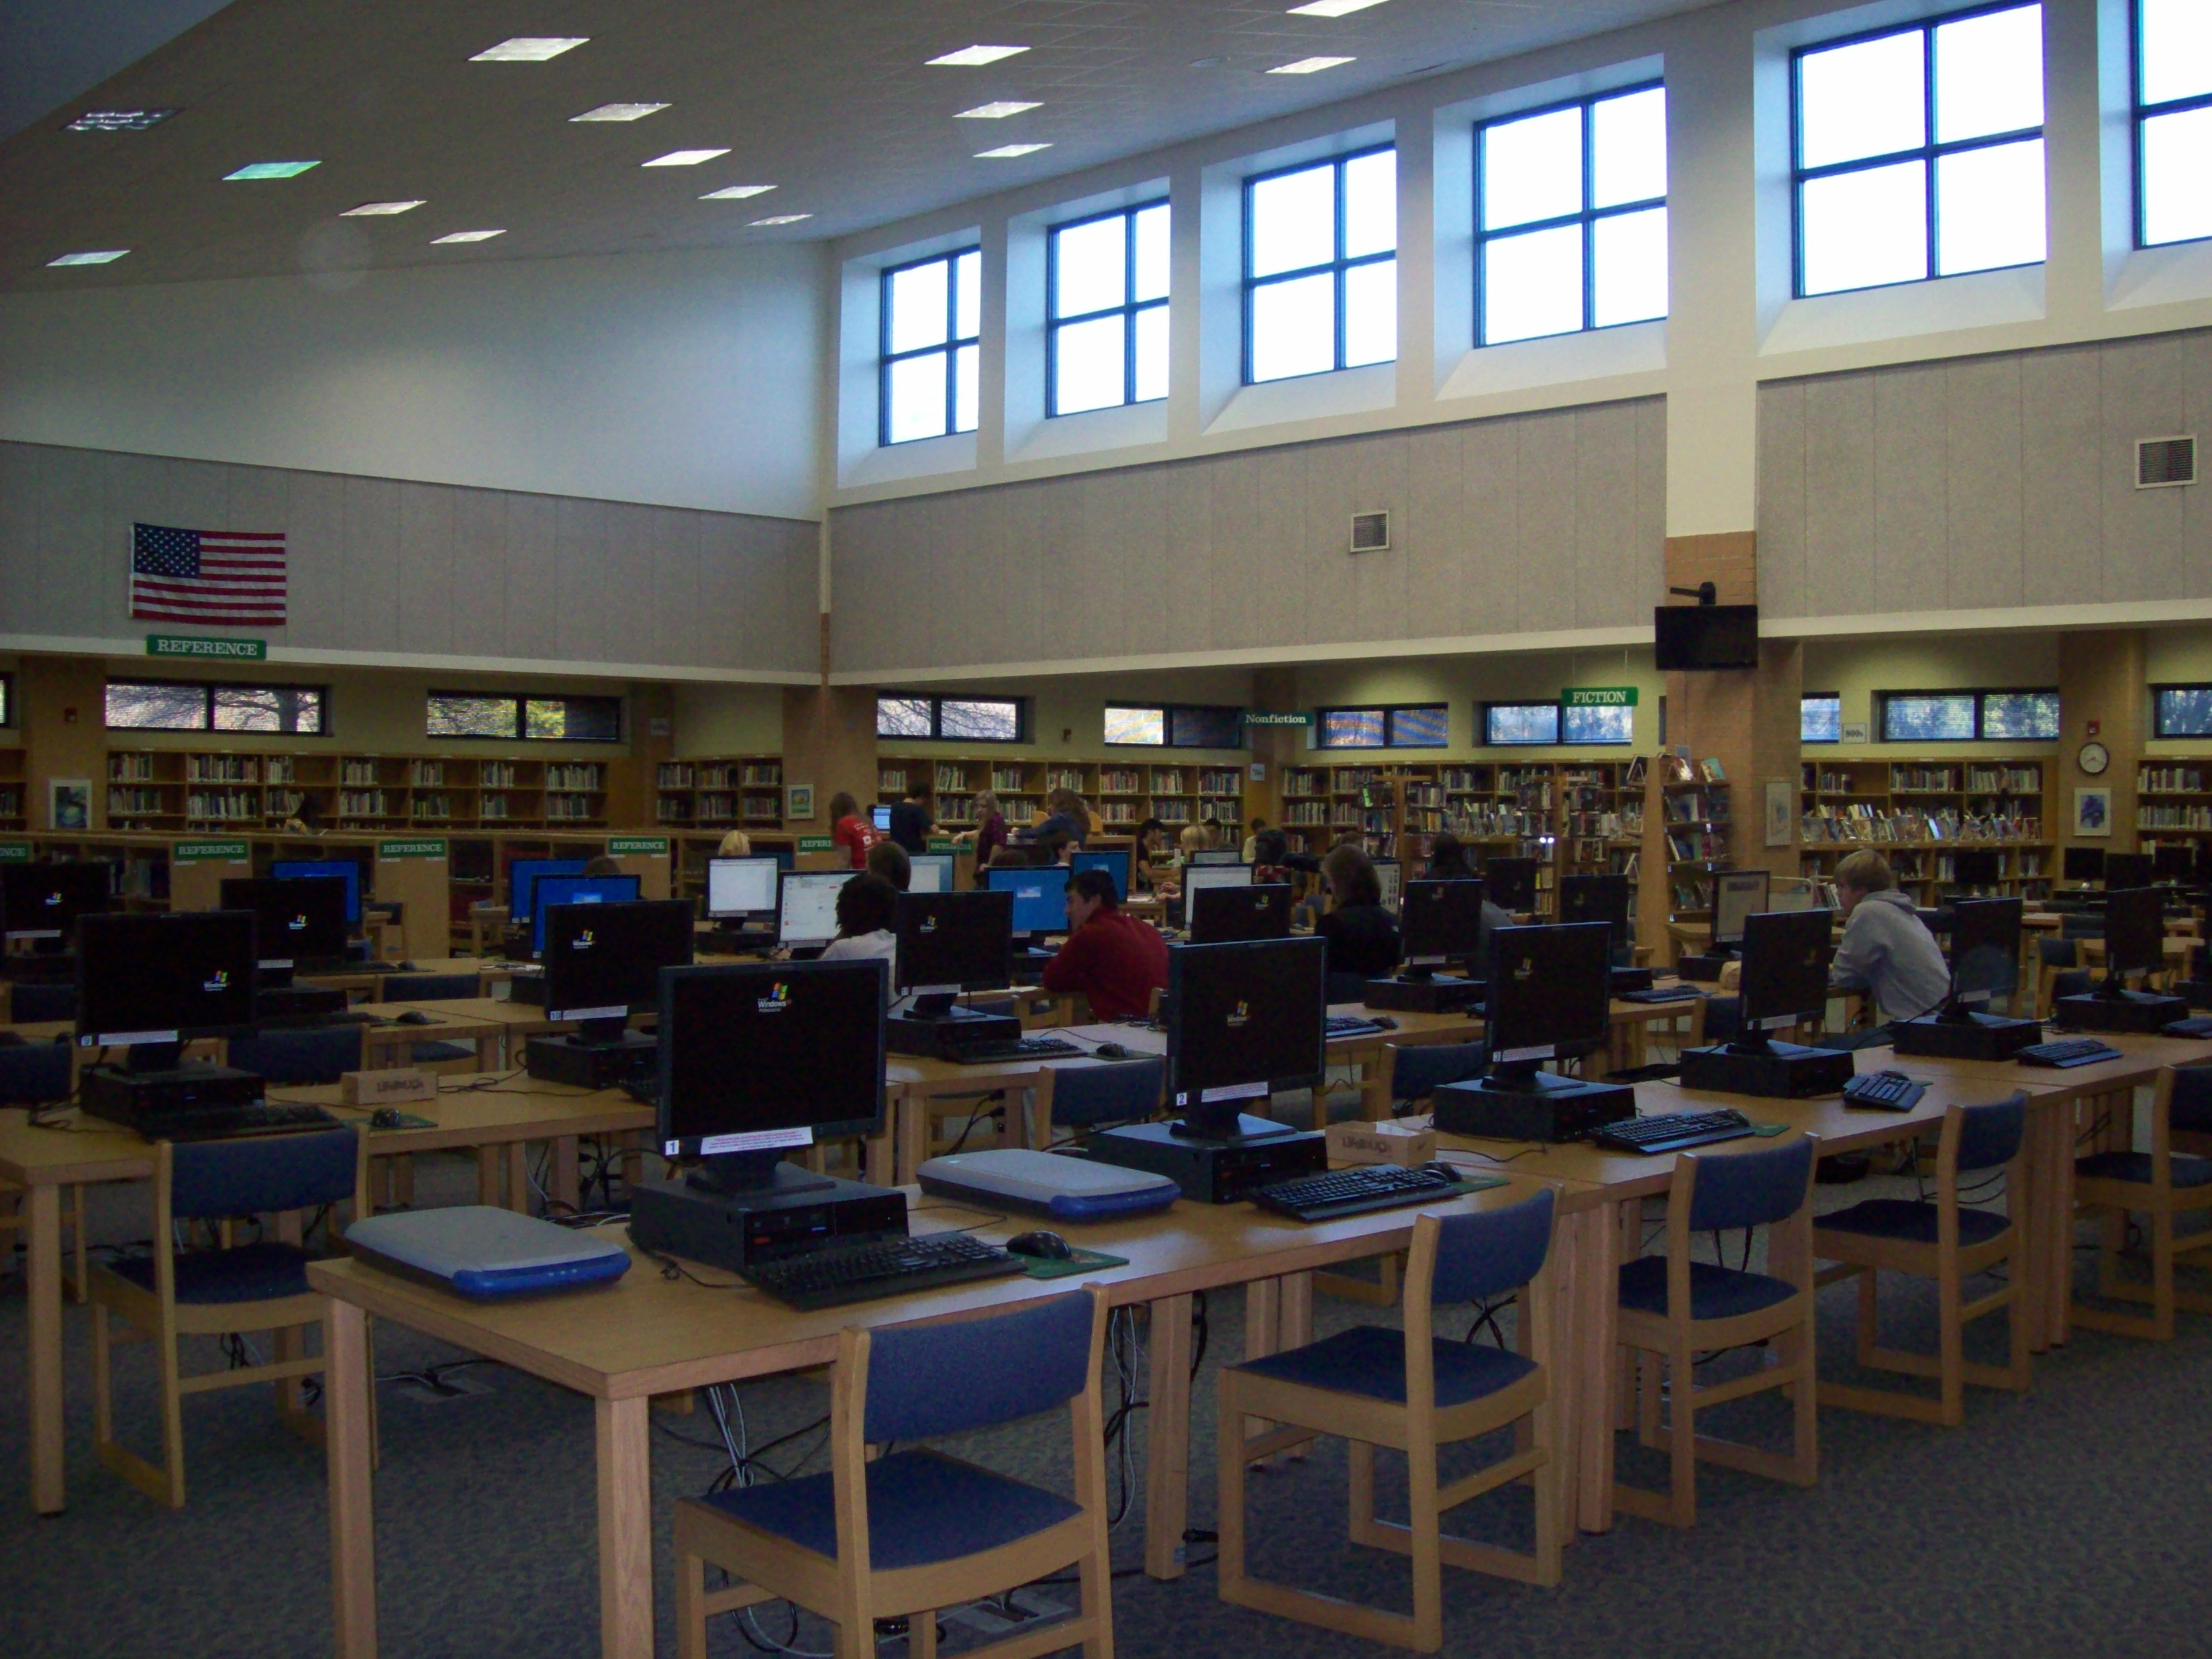 The Leesville Library is a great environment for learning. However, the library lacks a large variety of students.